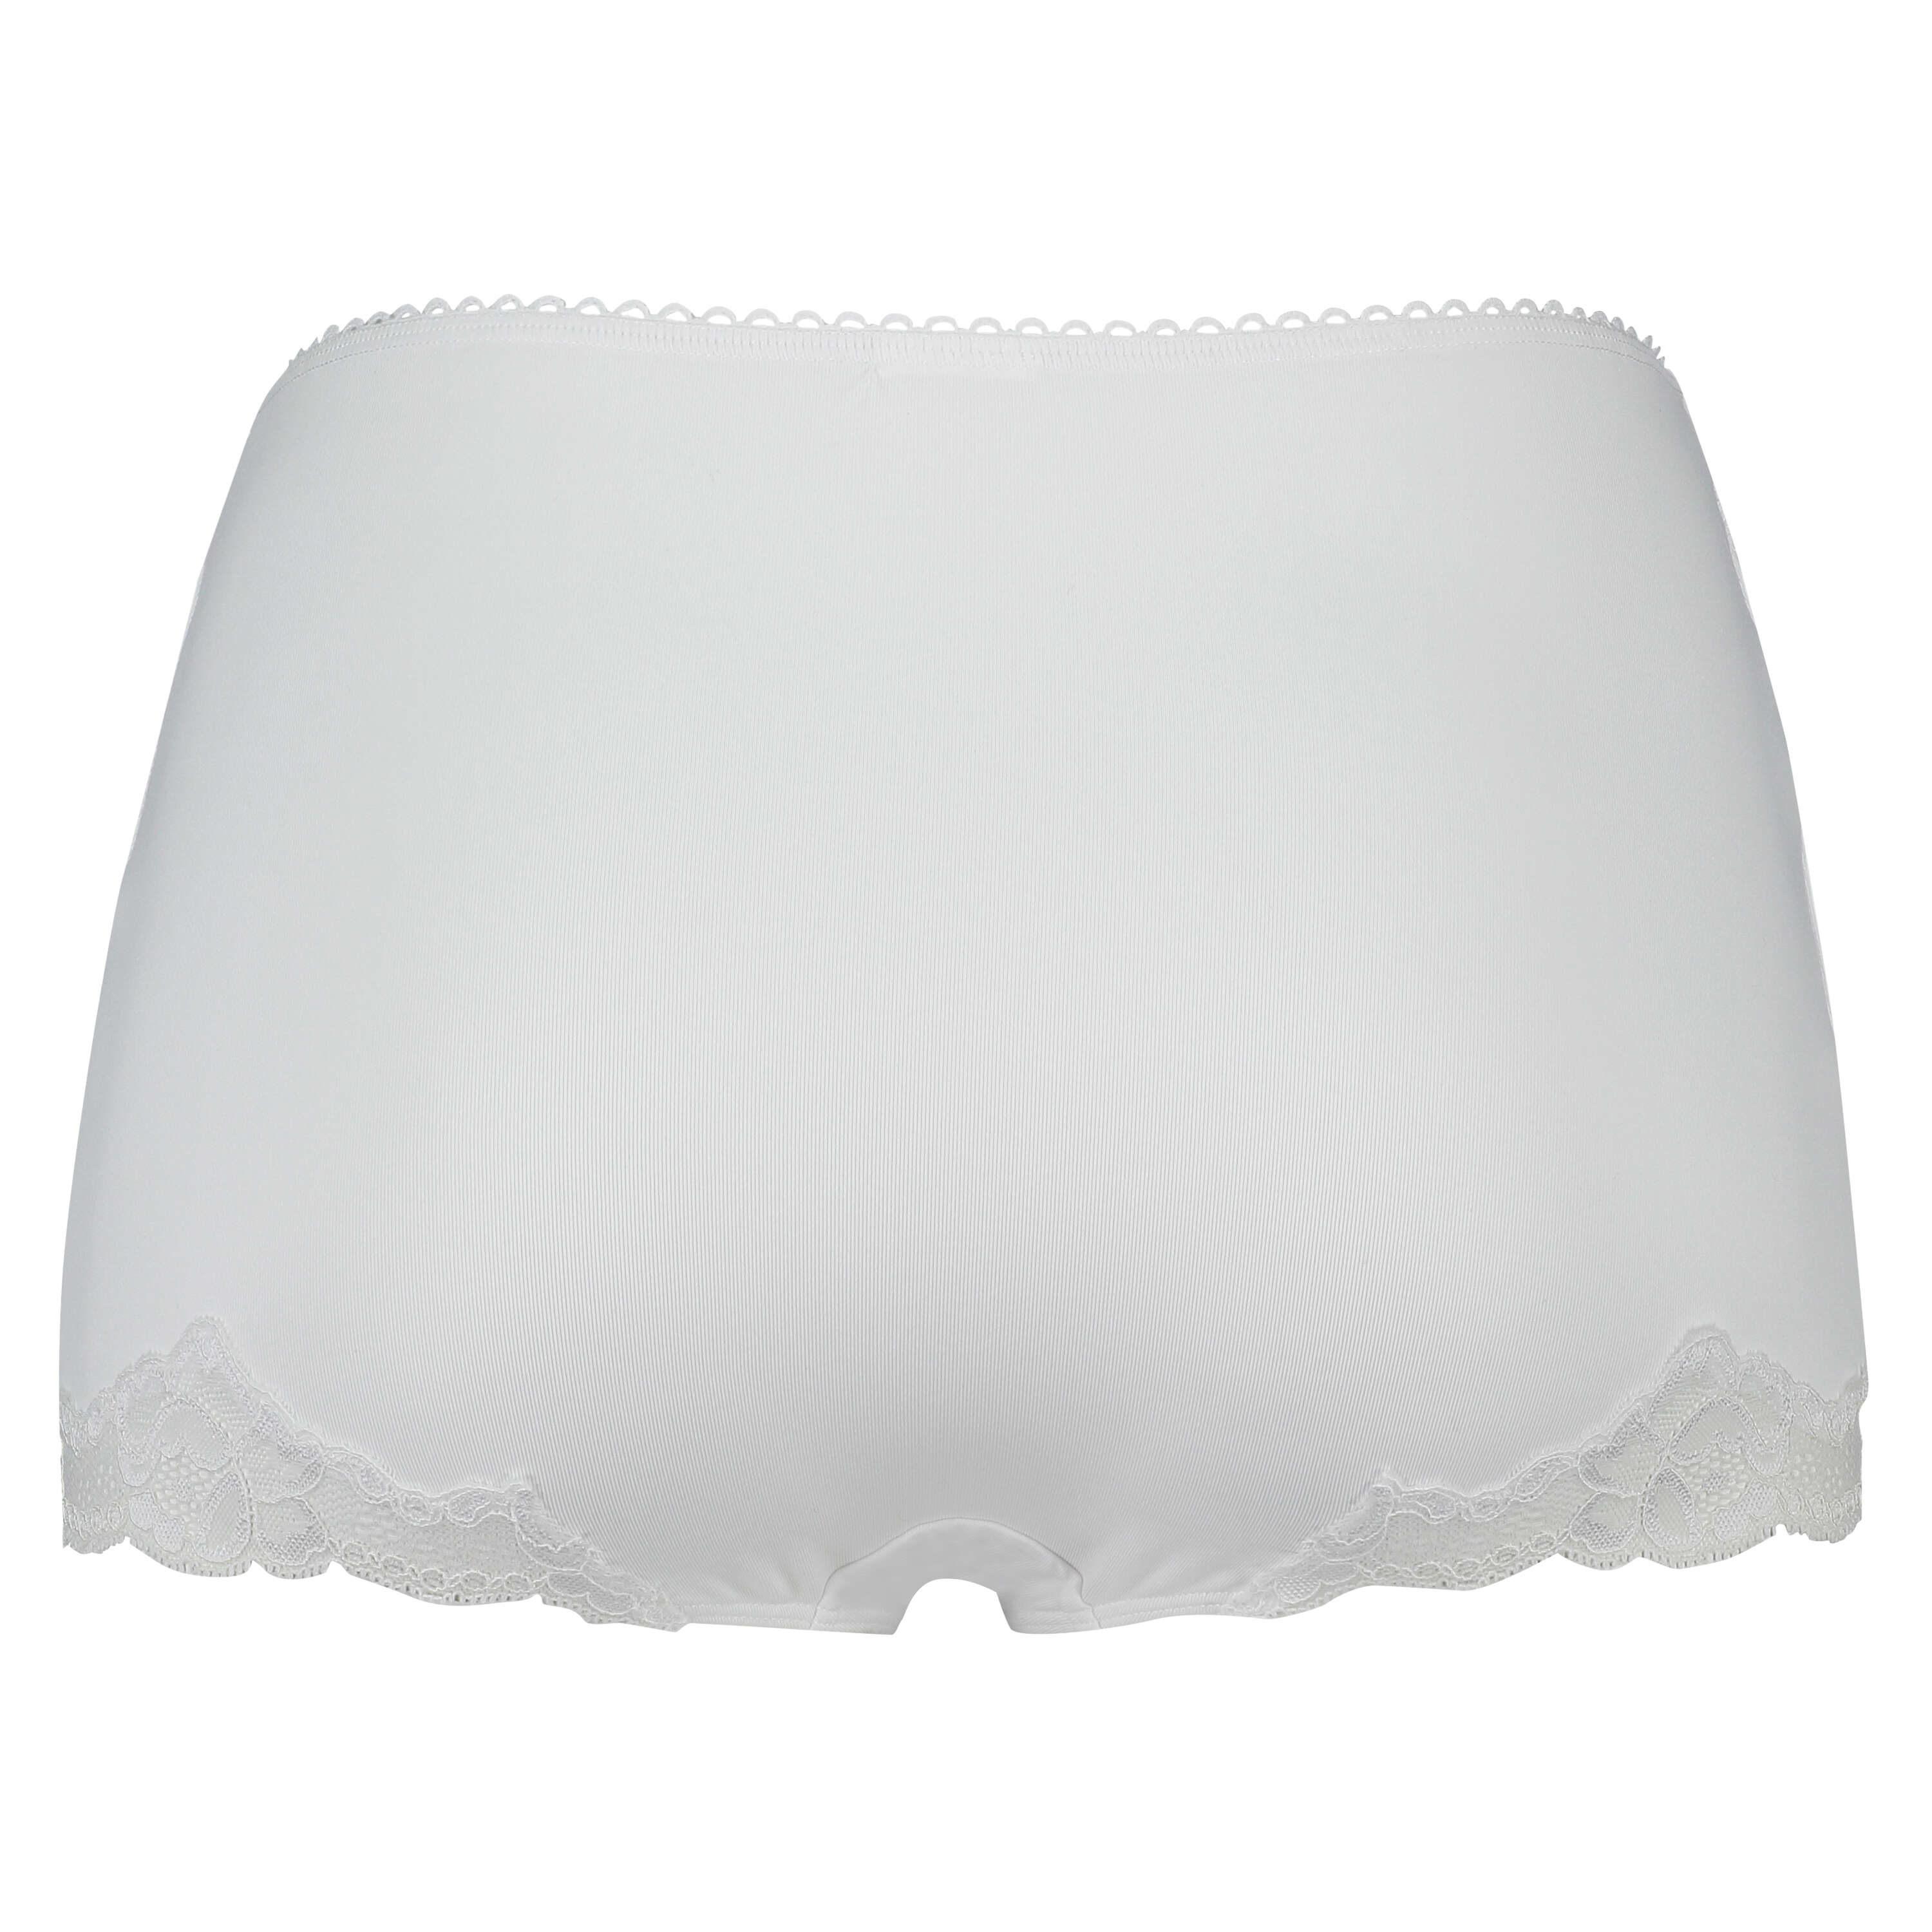 Boxer Secret lace, Blanc, main